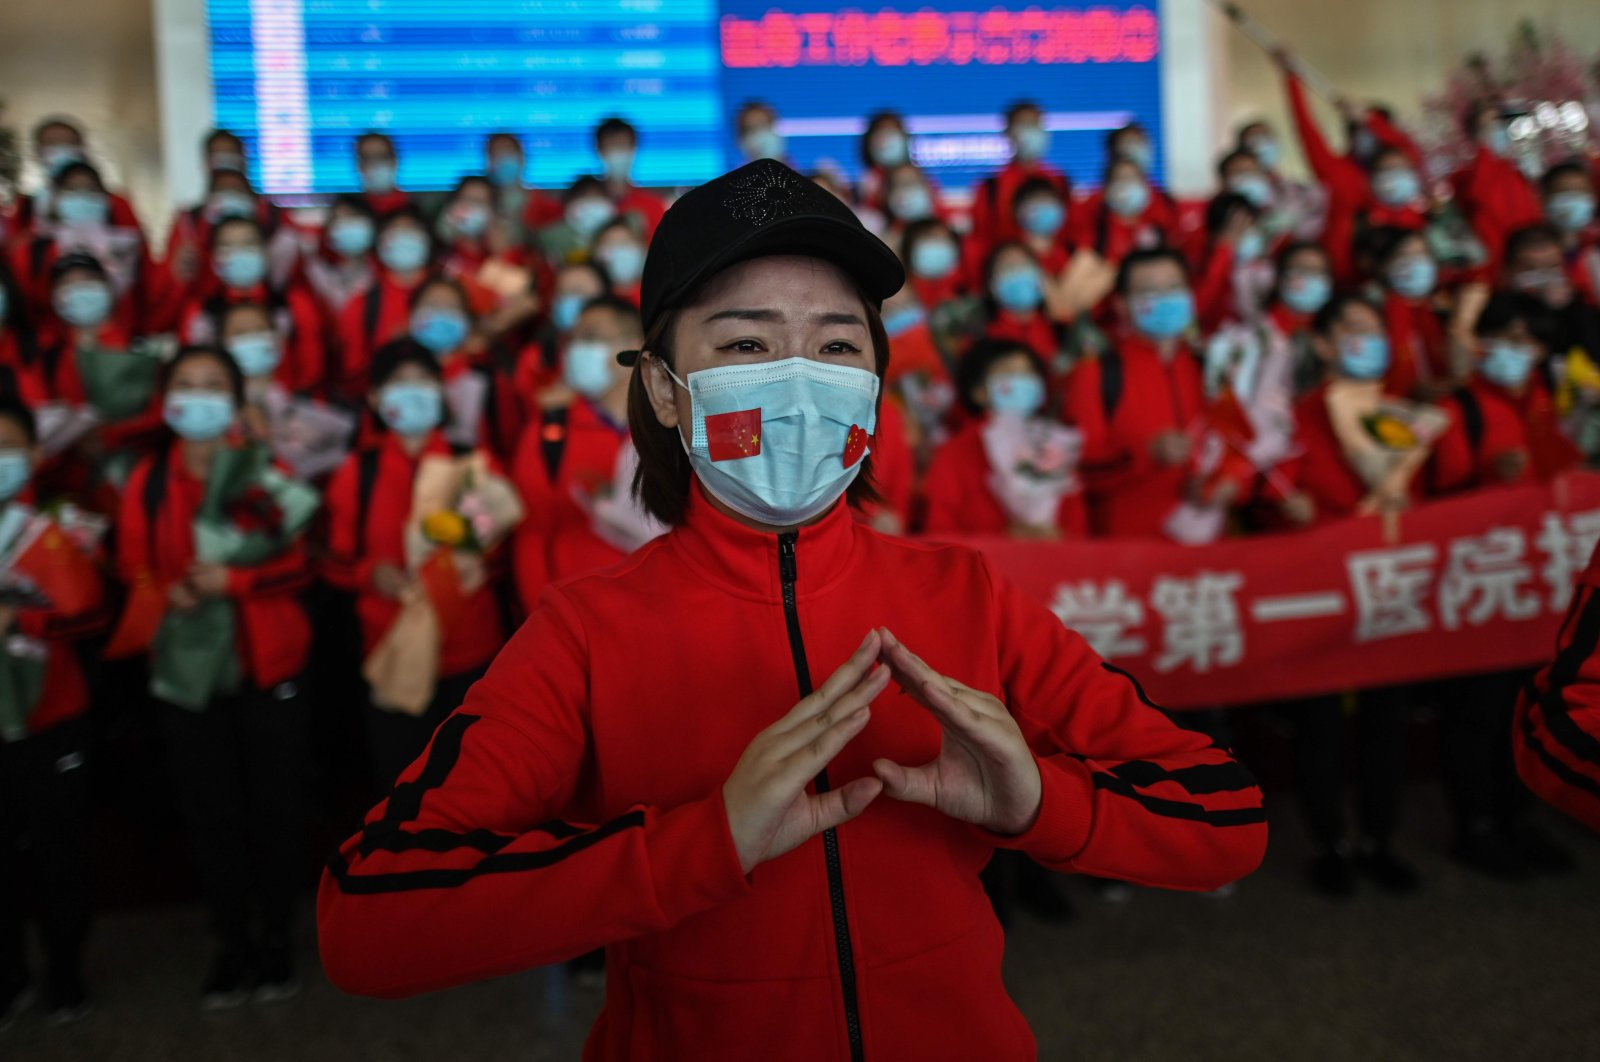 A medical worker from Jilin province tears up during a ceremony as Tianhe Airport is reopened in Wuhan, Hubei province, China, Wednesday, April 8, 2020. (AFP Photo)